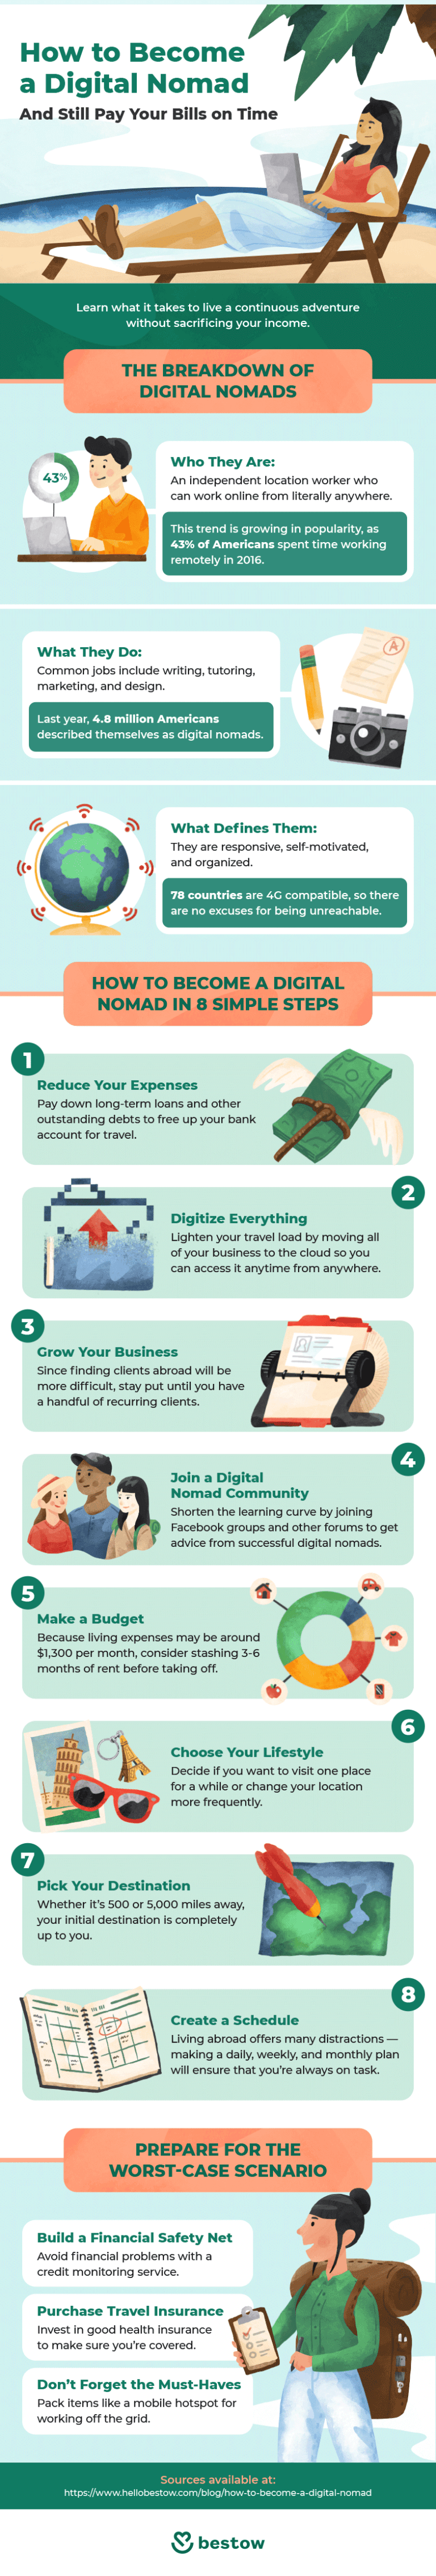 how-to-become-a-digital-nomad-infographic-1-768x4538.png